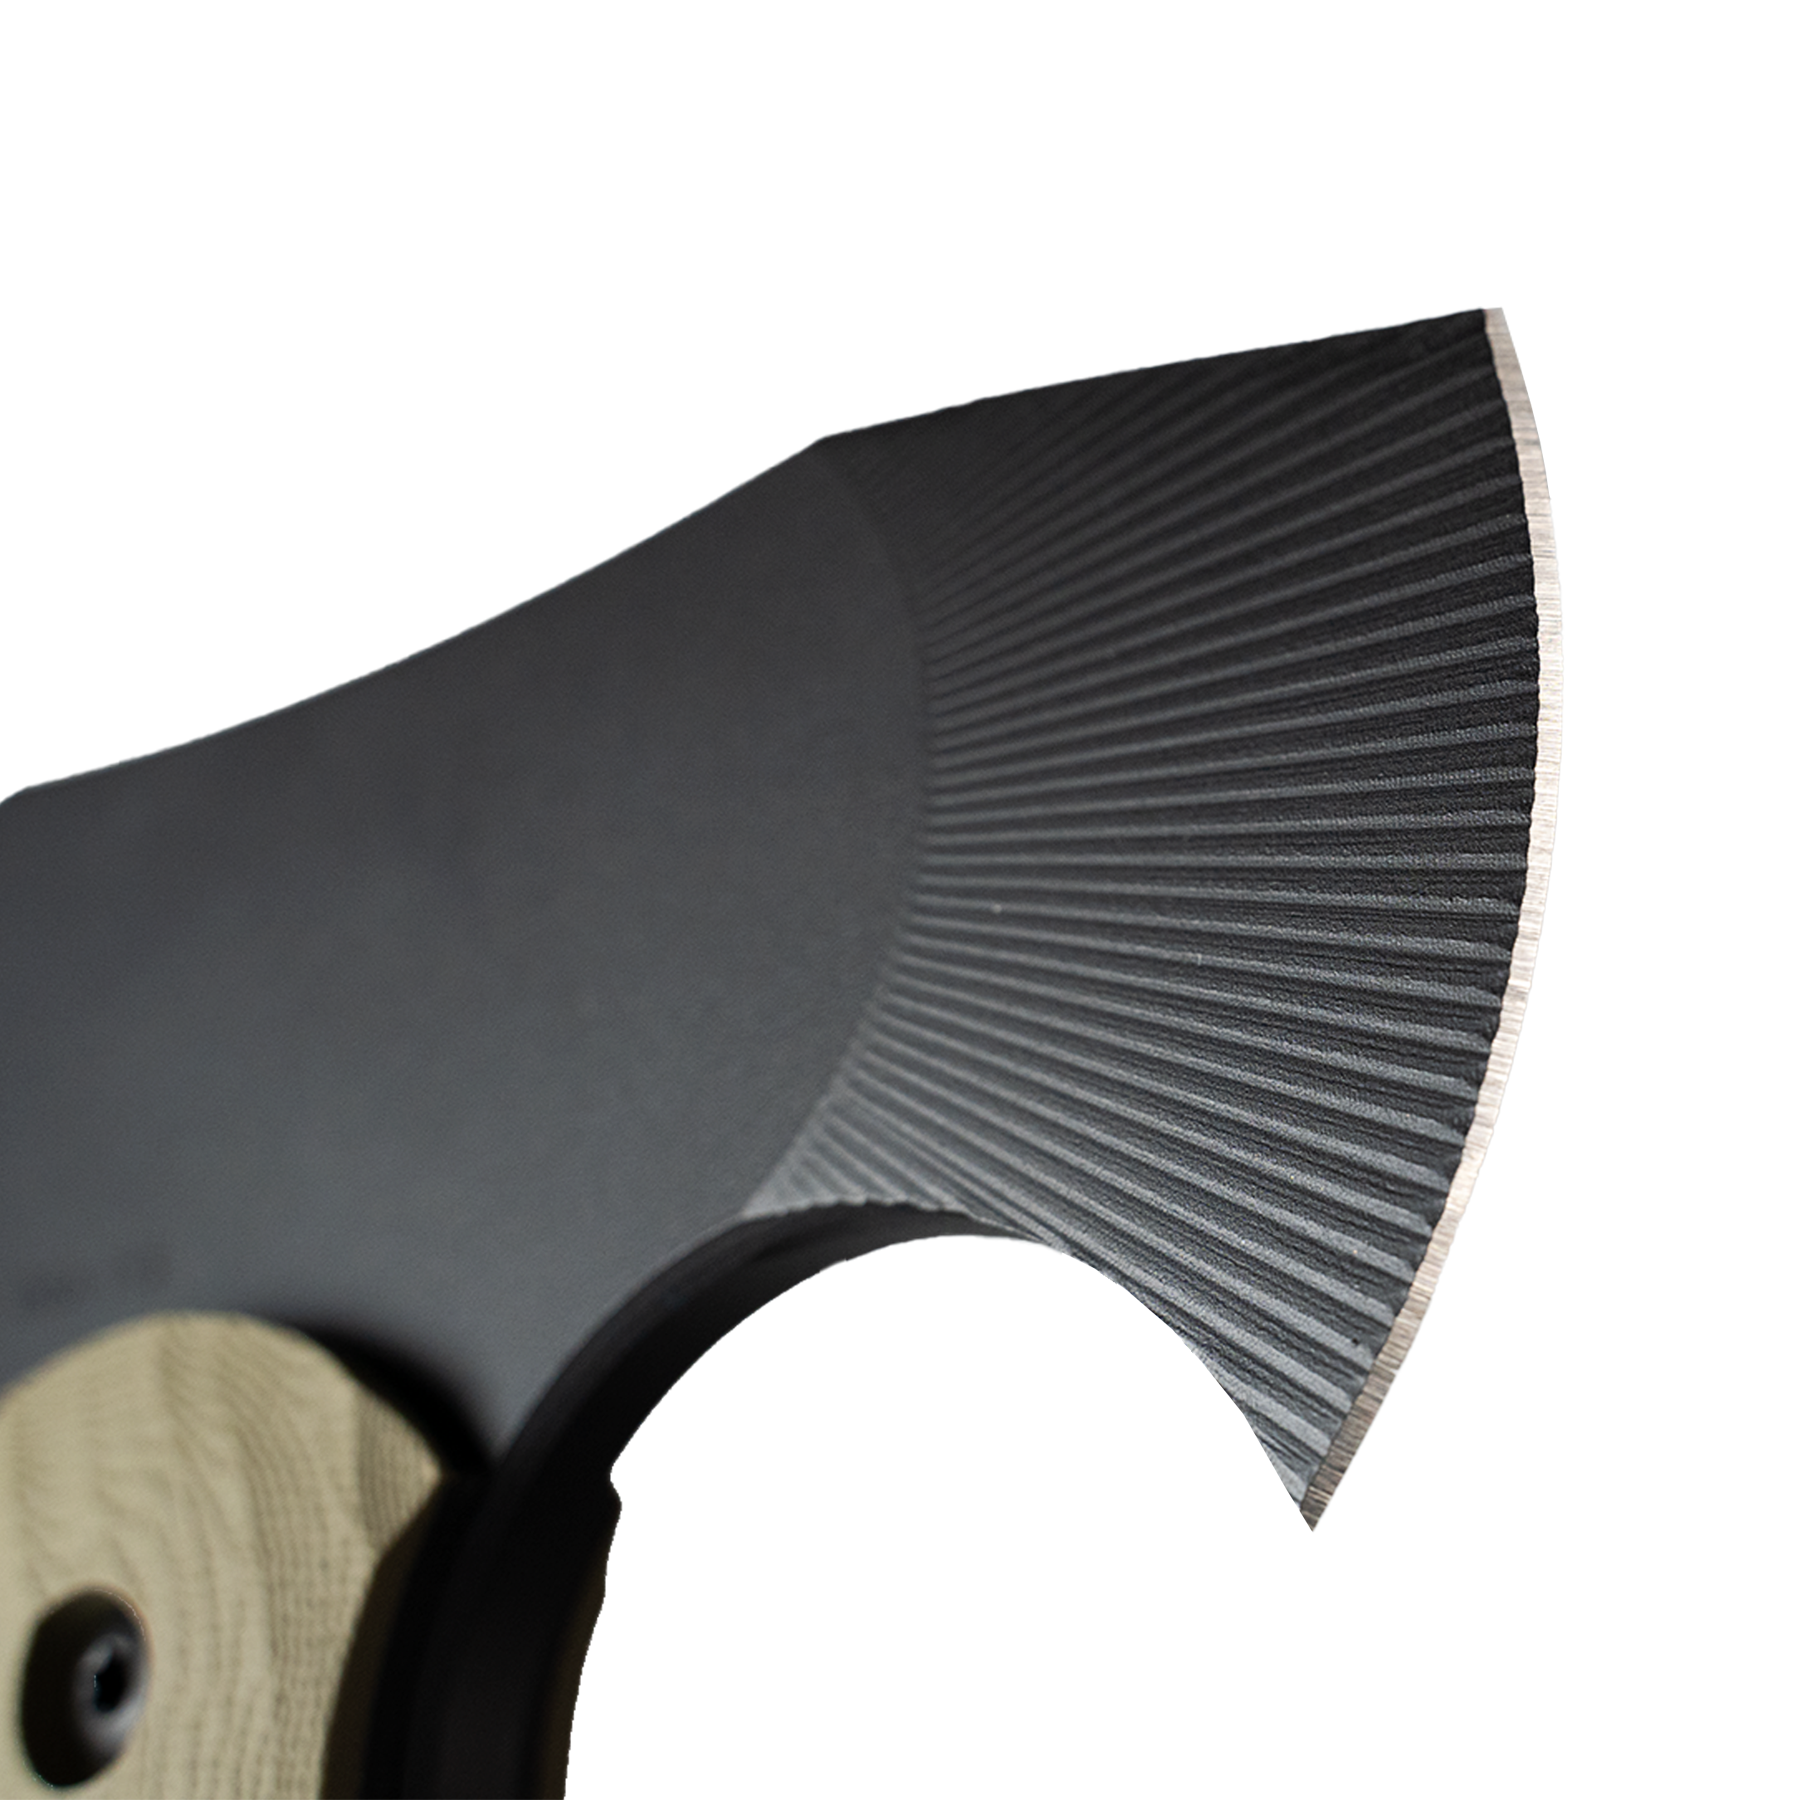 Toor Knives Tomahawk - Muted Sage